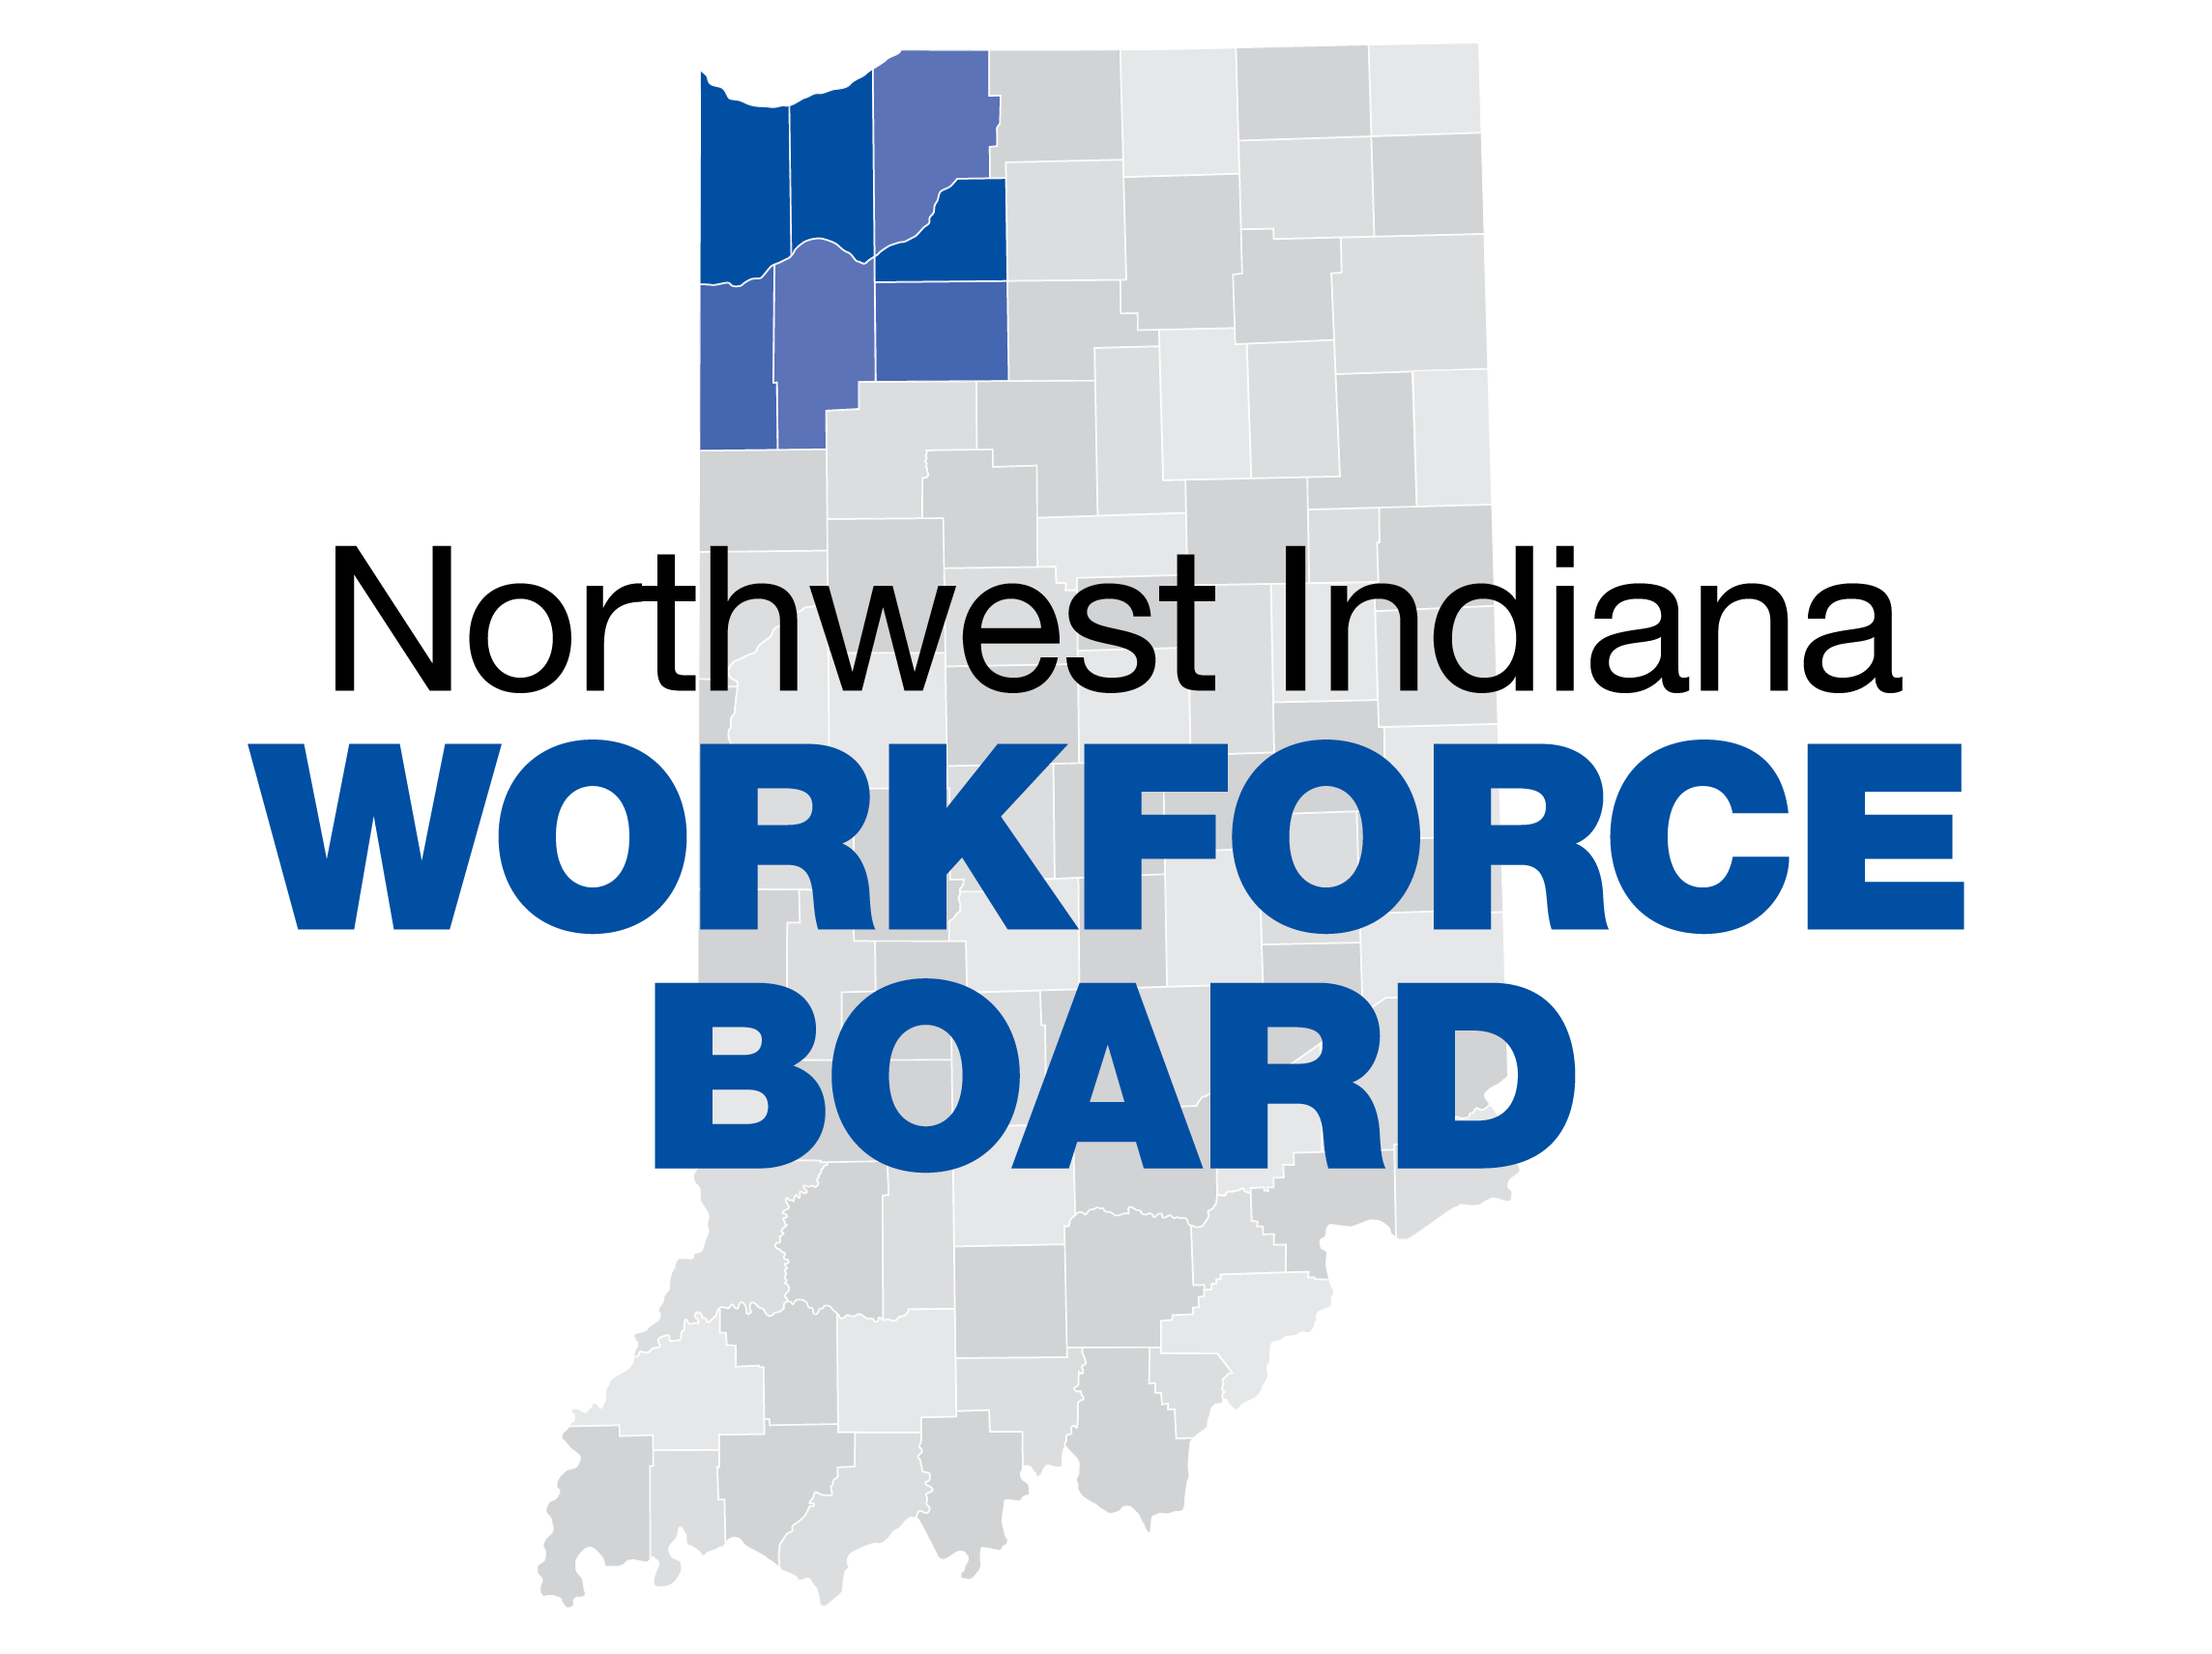 Announcement of the 2018-19 Northwest Indiana Workforce Board Officers